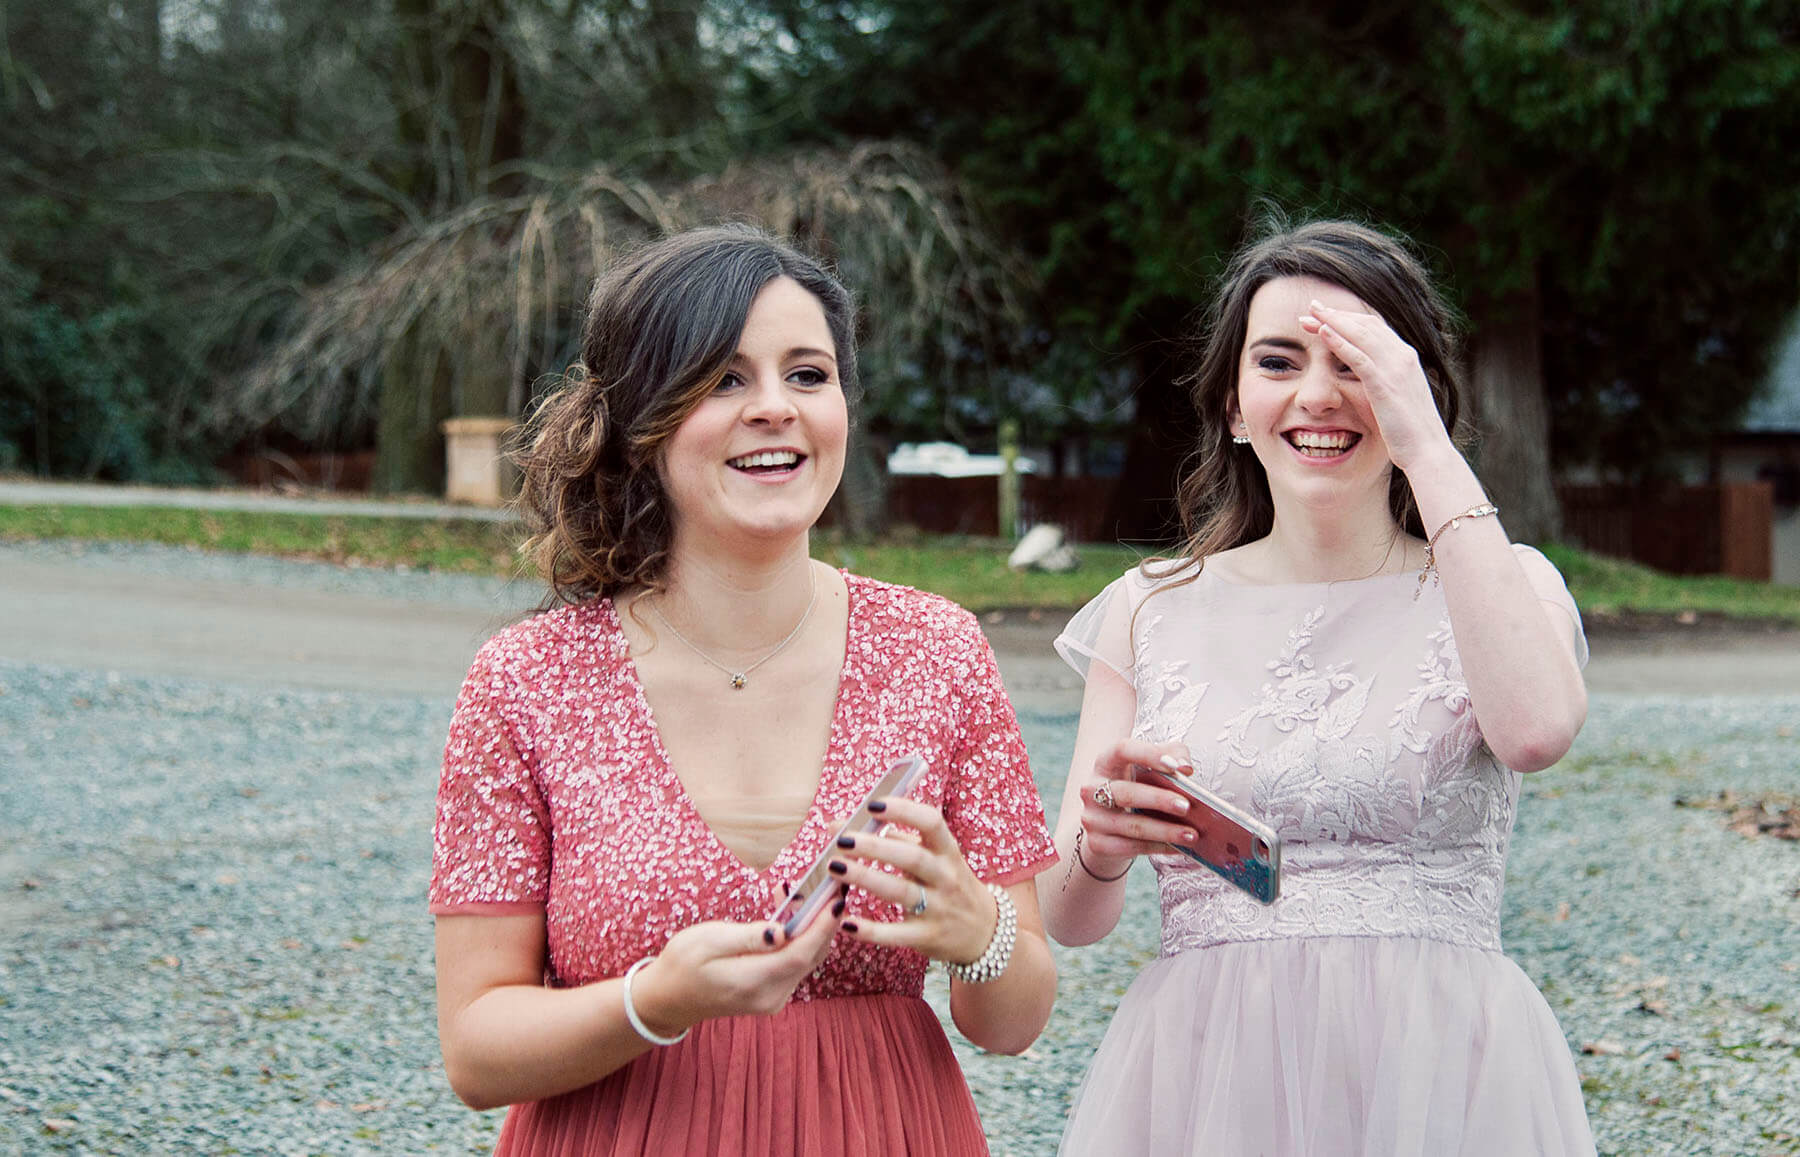 Two female wedding guests laughing with phones in their hands